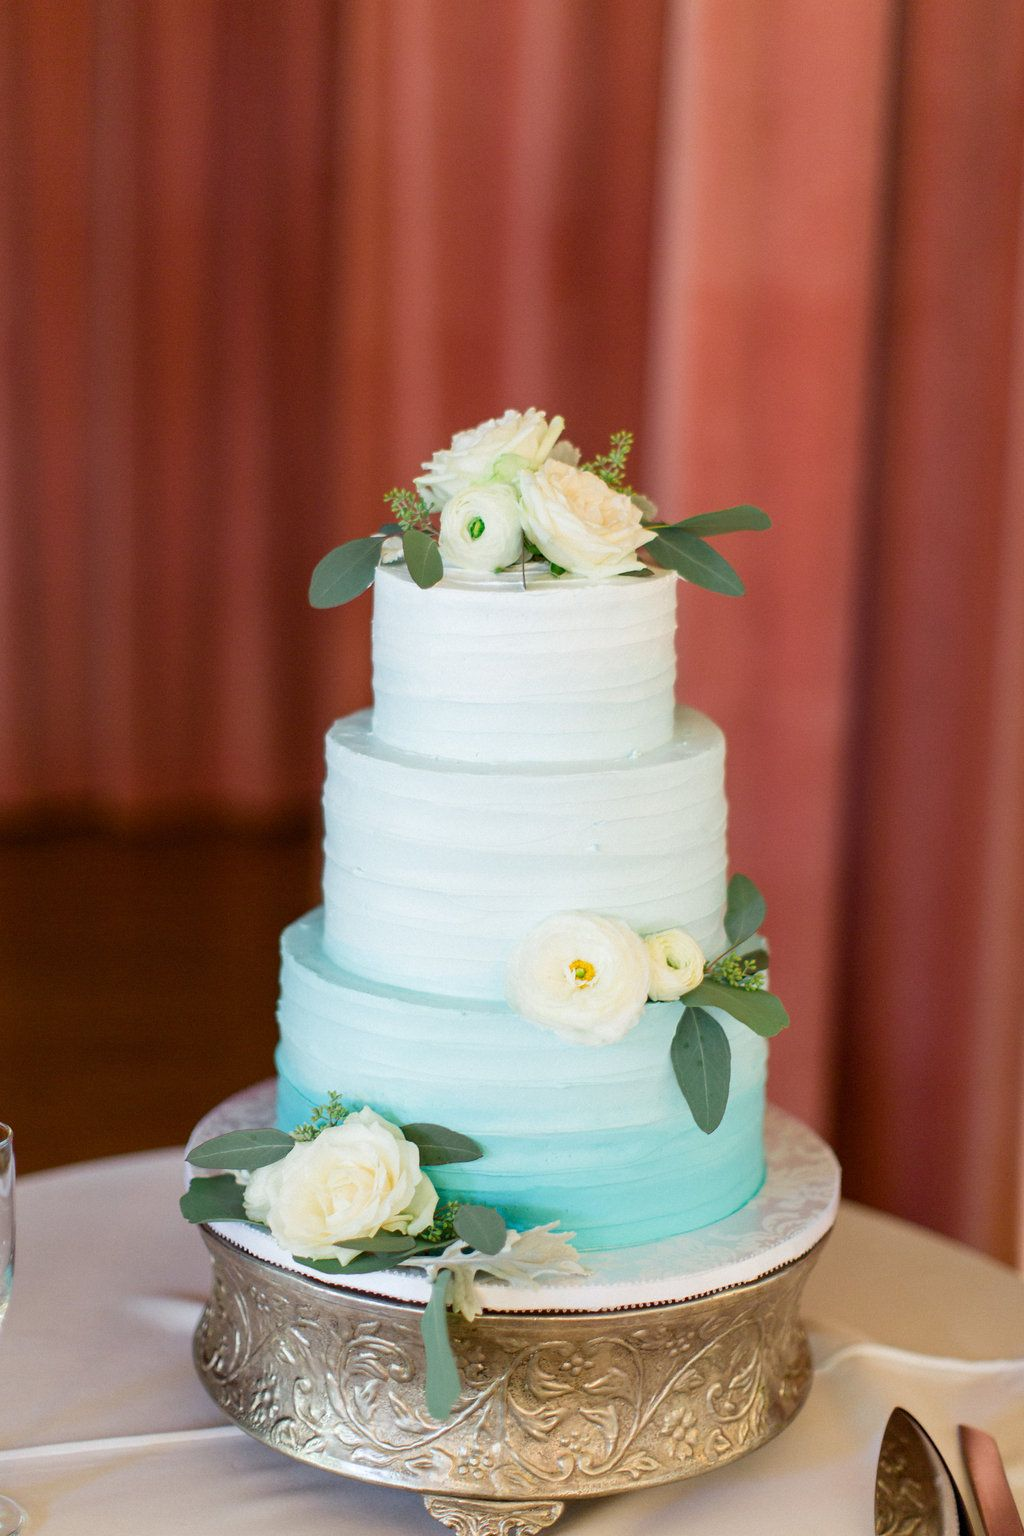 The thursday club blue ombre beach wedding cake decorated with white